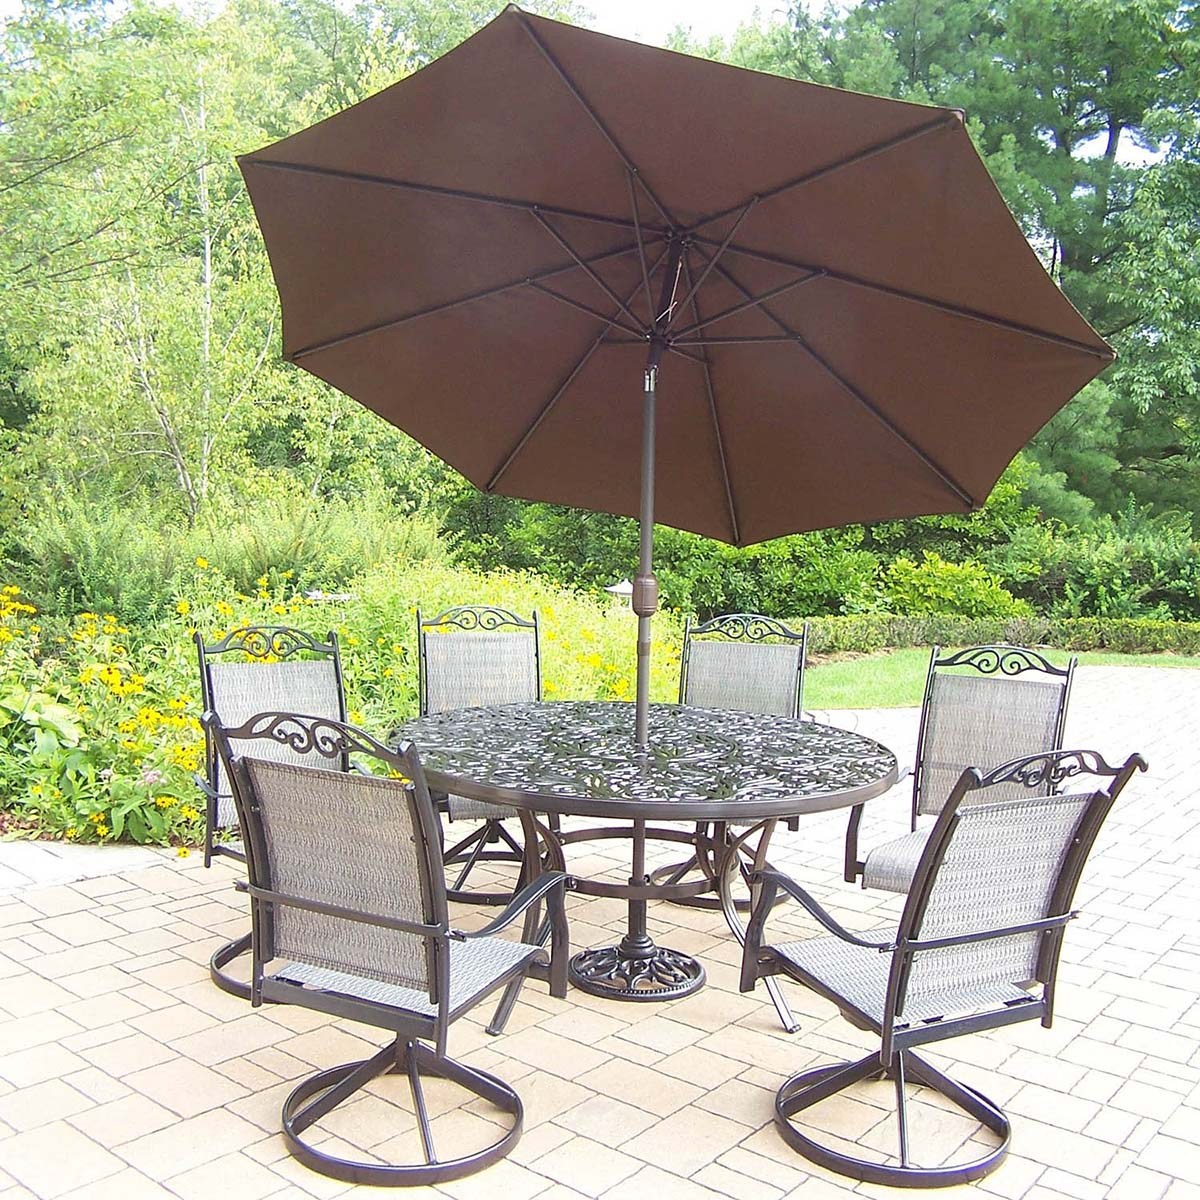 9pc Dining Set: Table, Rockers, Brown Umbrella & Stand